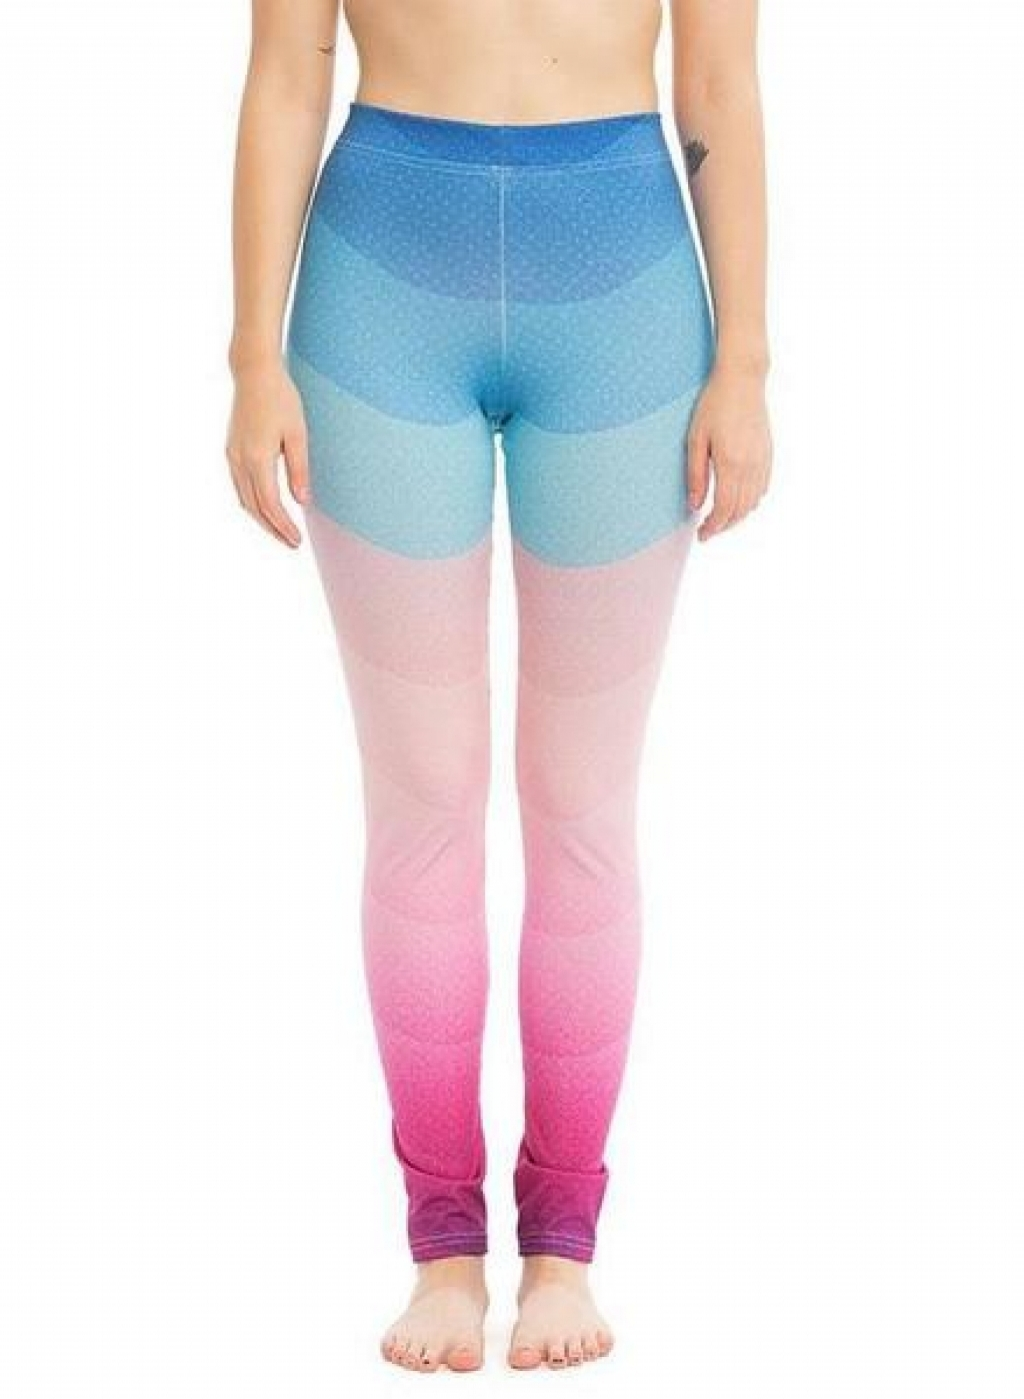 15429807540_liz-m-leggings-sea-waves-leggings-3809161609304_grande.jpg